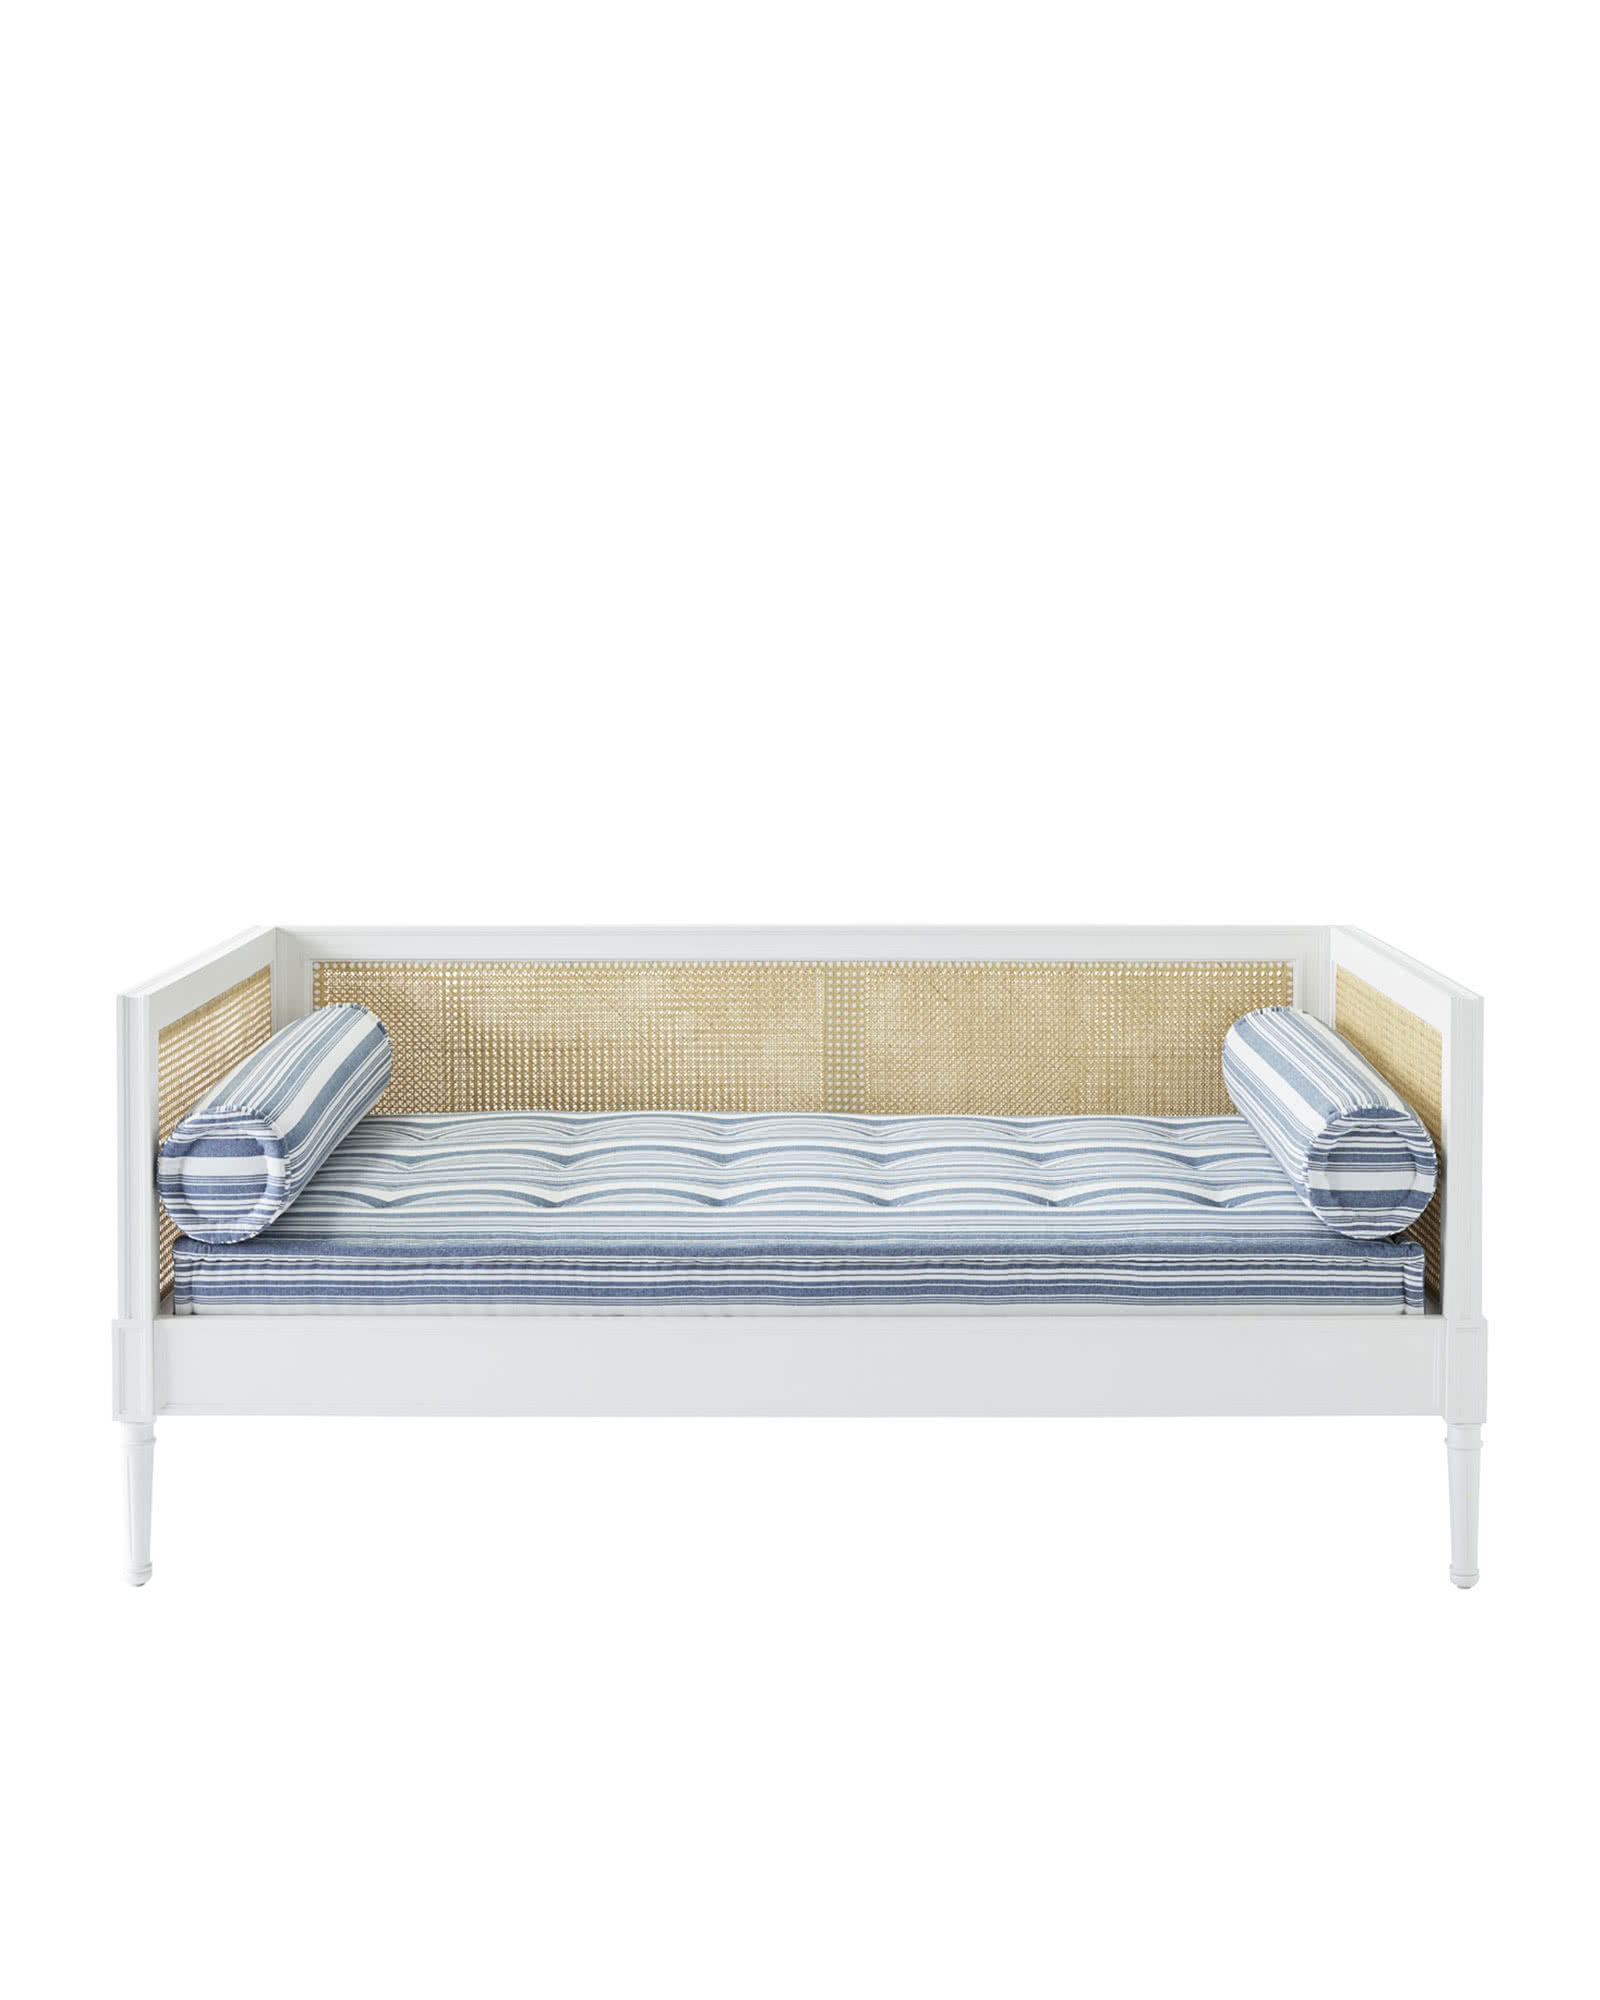 Harbour Cane Daybed Serena Amp Lily